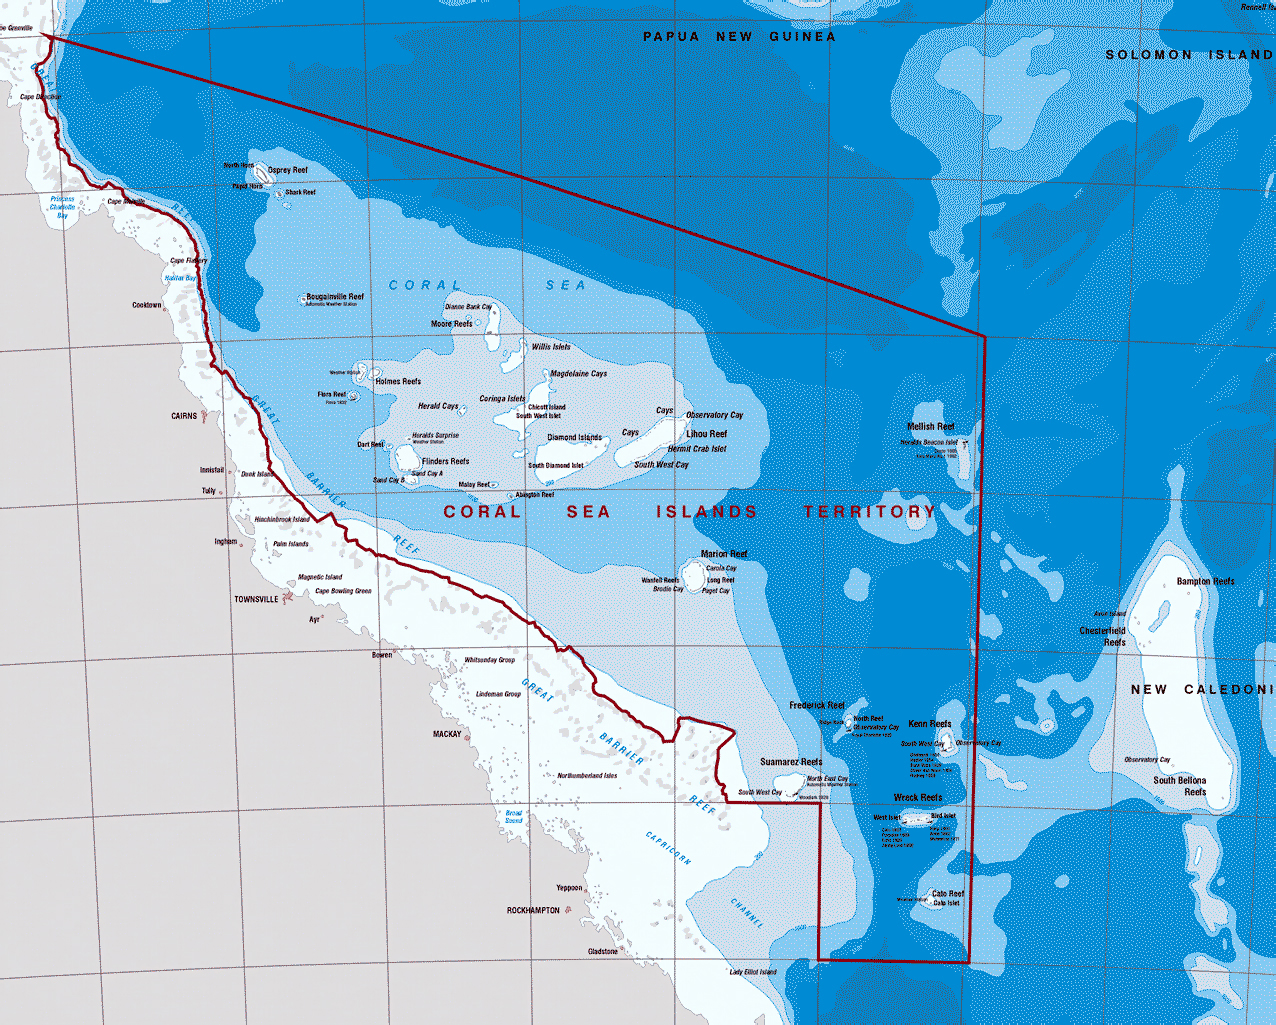 Detailed Topographical Map Of Coral Sea Islands Coral Sea Islands